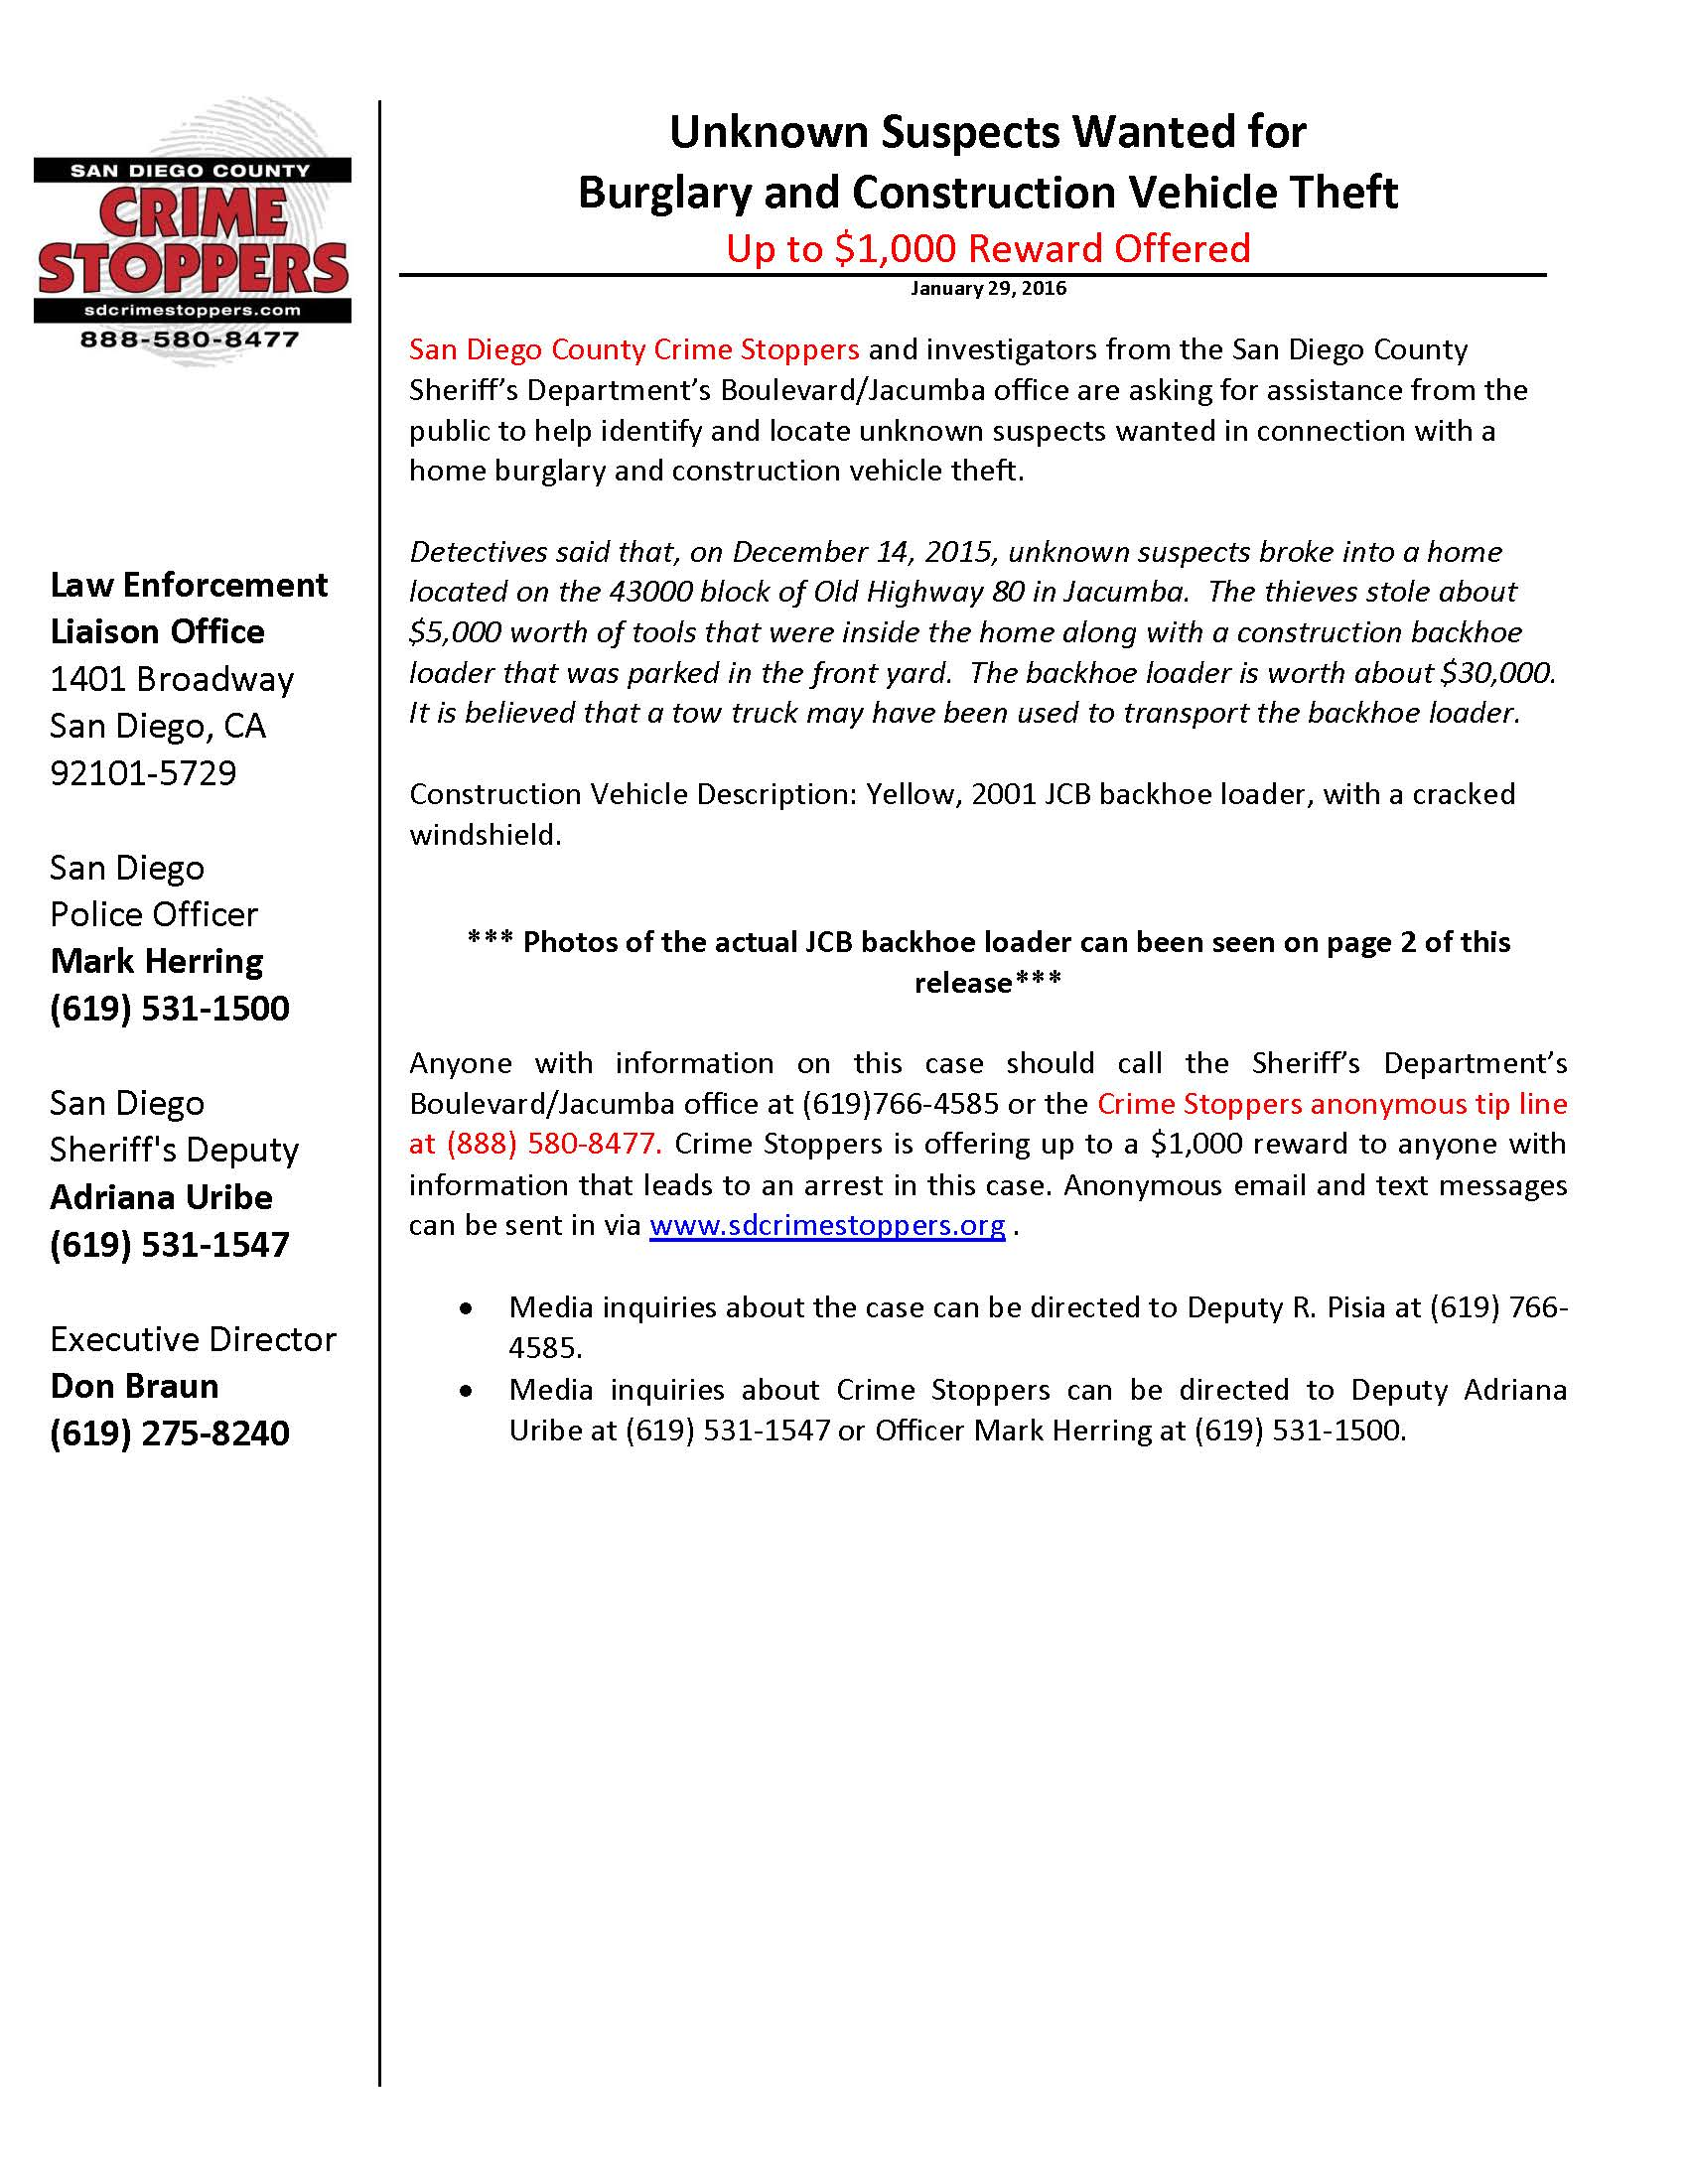 012816 Jacumba Burglary and Construction Vehicle Theft_Page_1